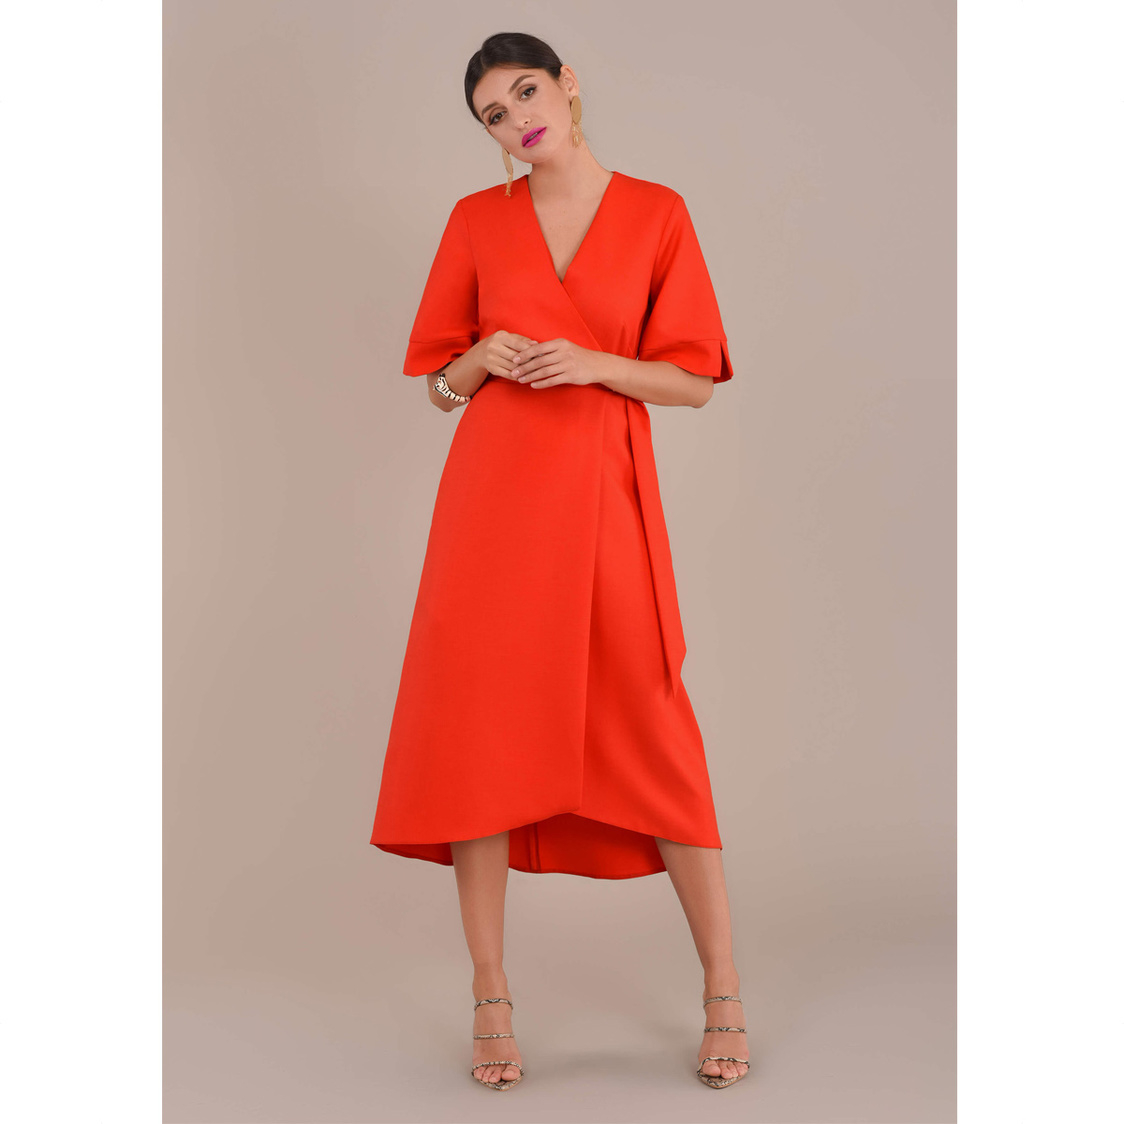 Orange A-Line Wrap Dress with Bell Sleeves